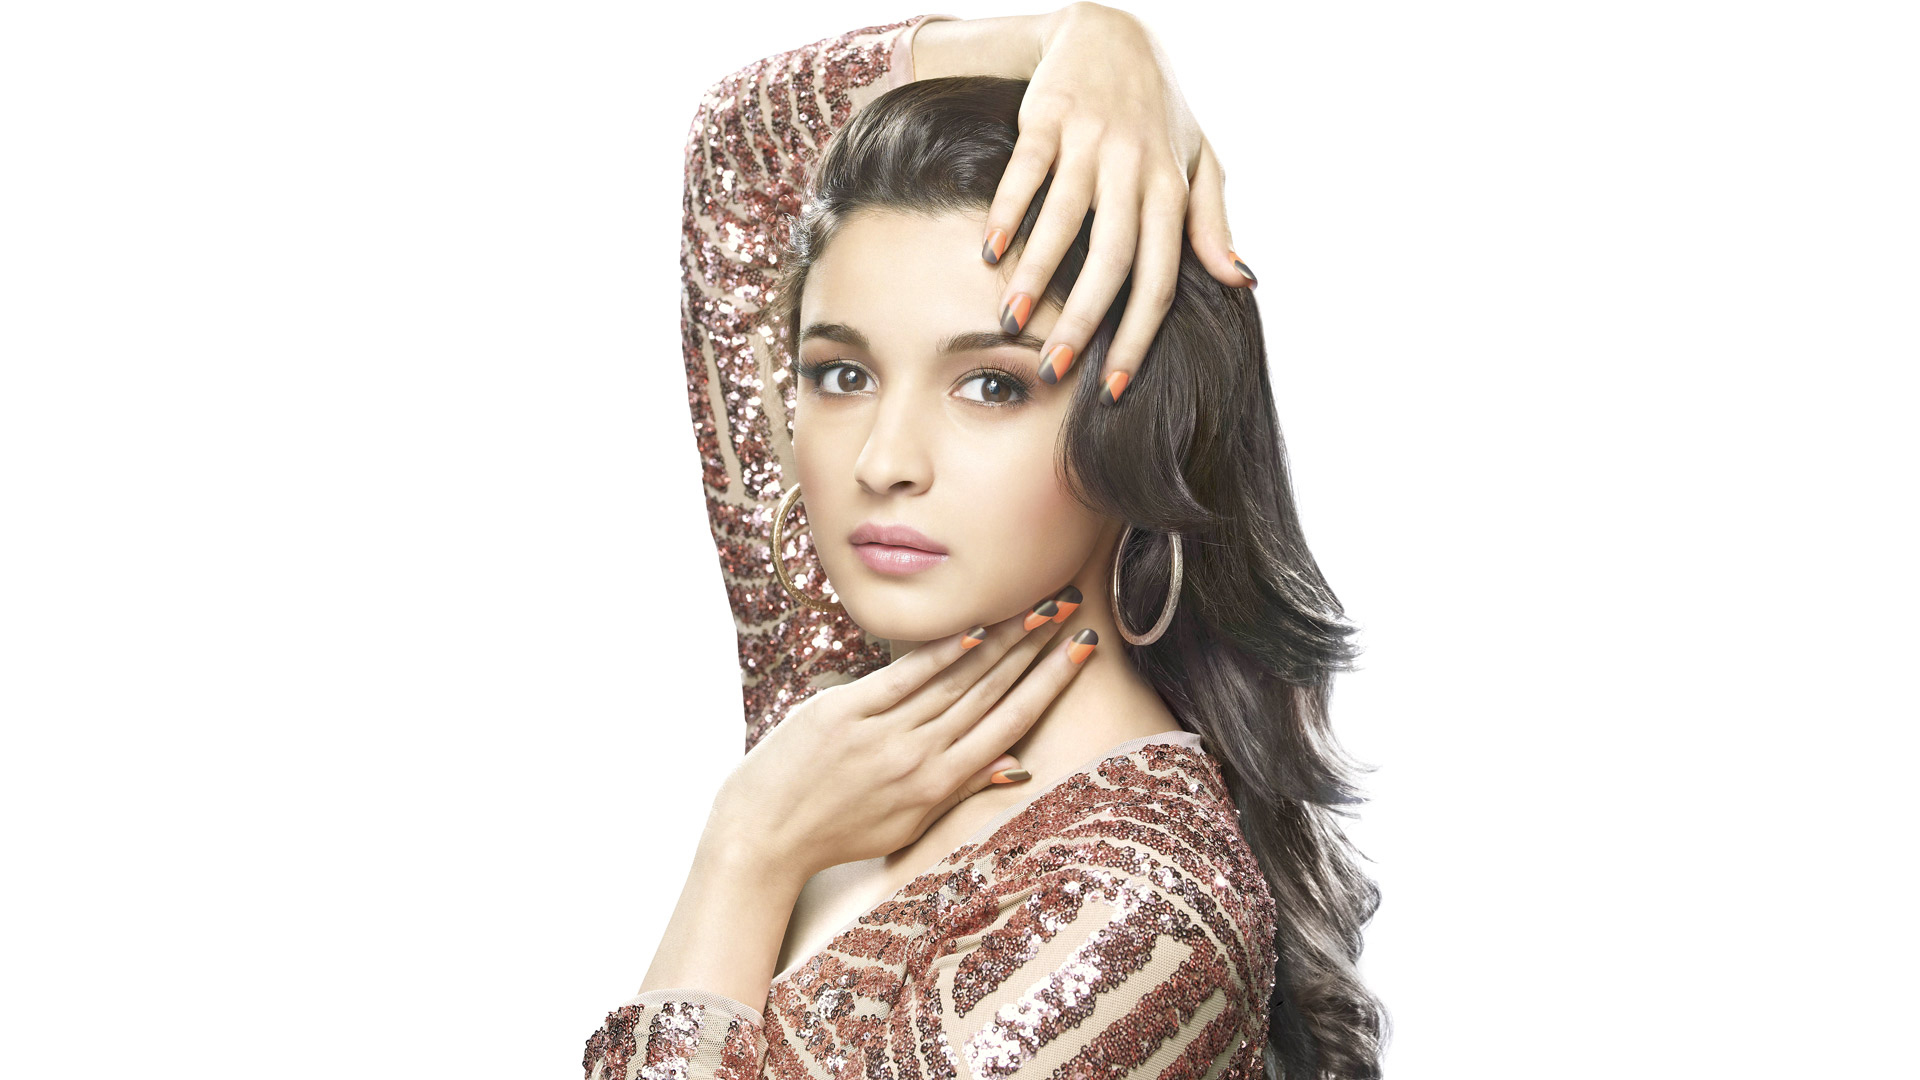 facebook covers for alia bhatt • popopics